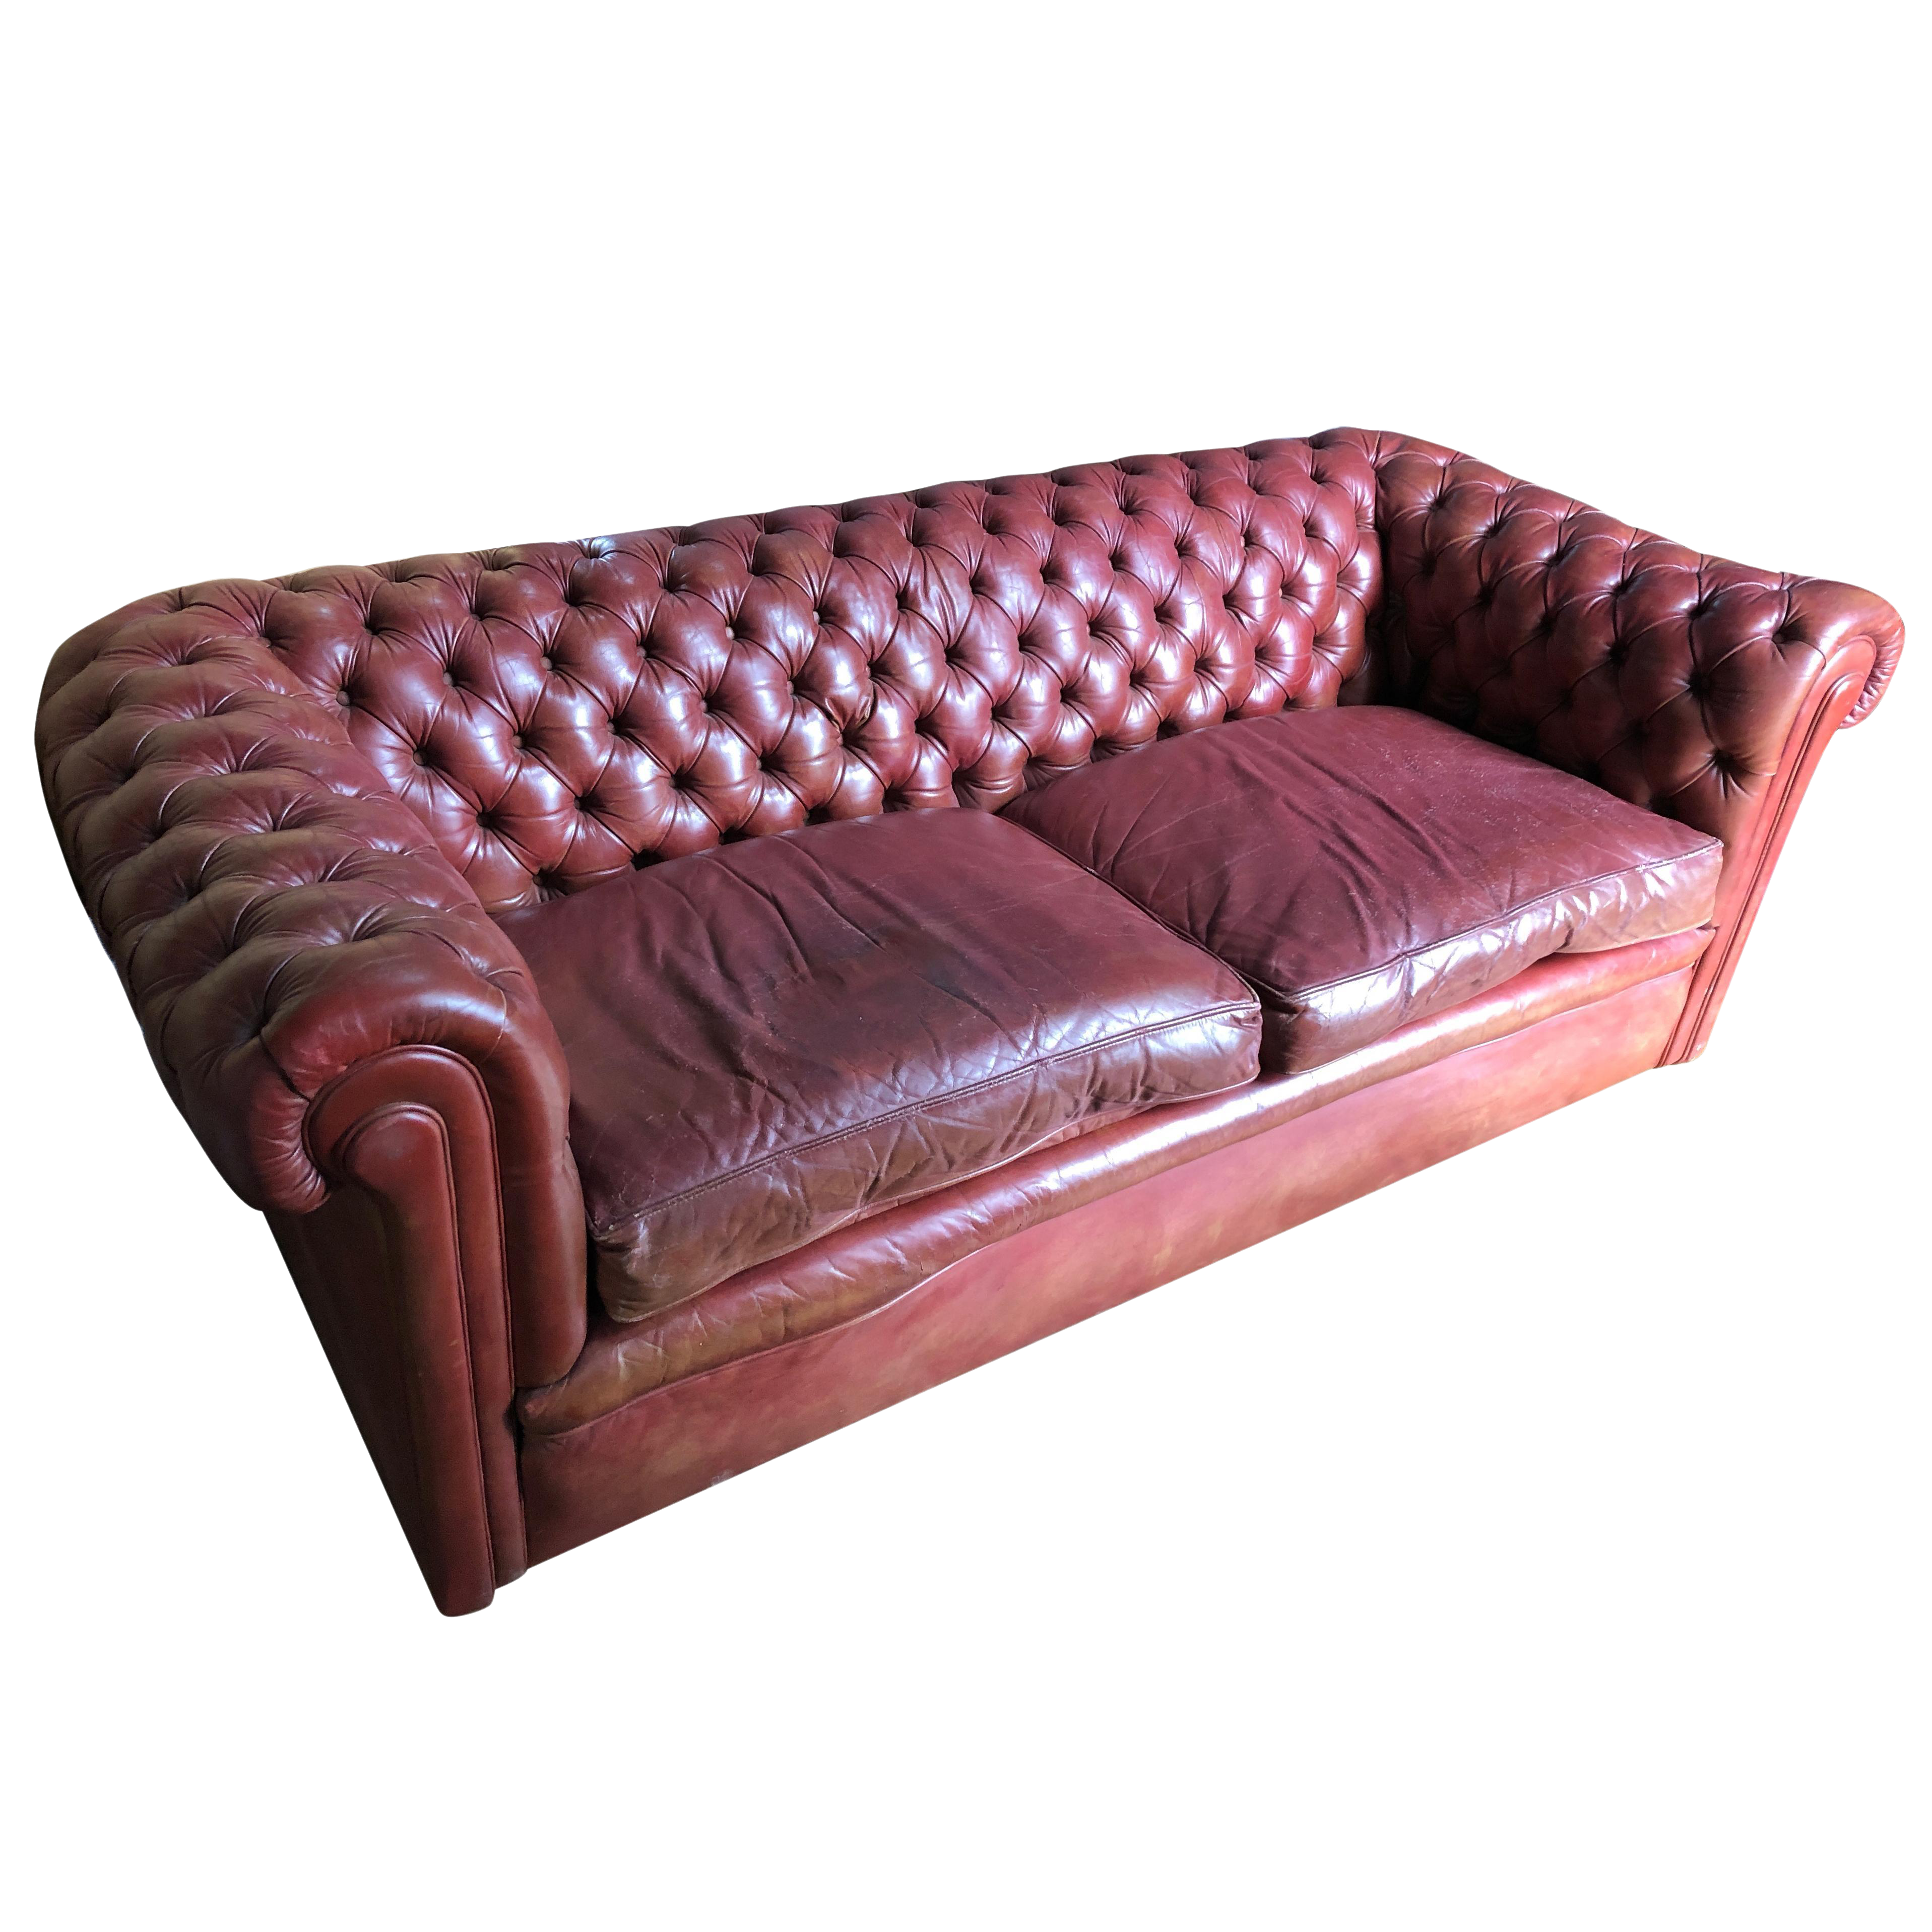 Incredibly Handsome Distressed Tufted English Leather Chesterfield Sofa